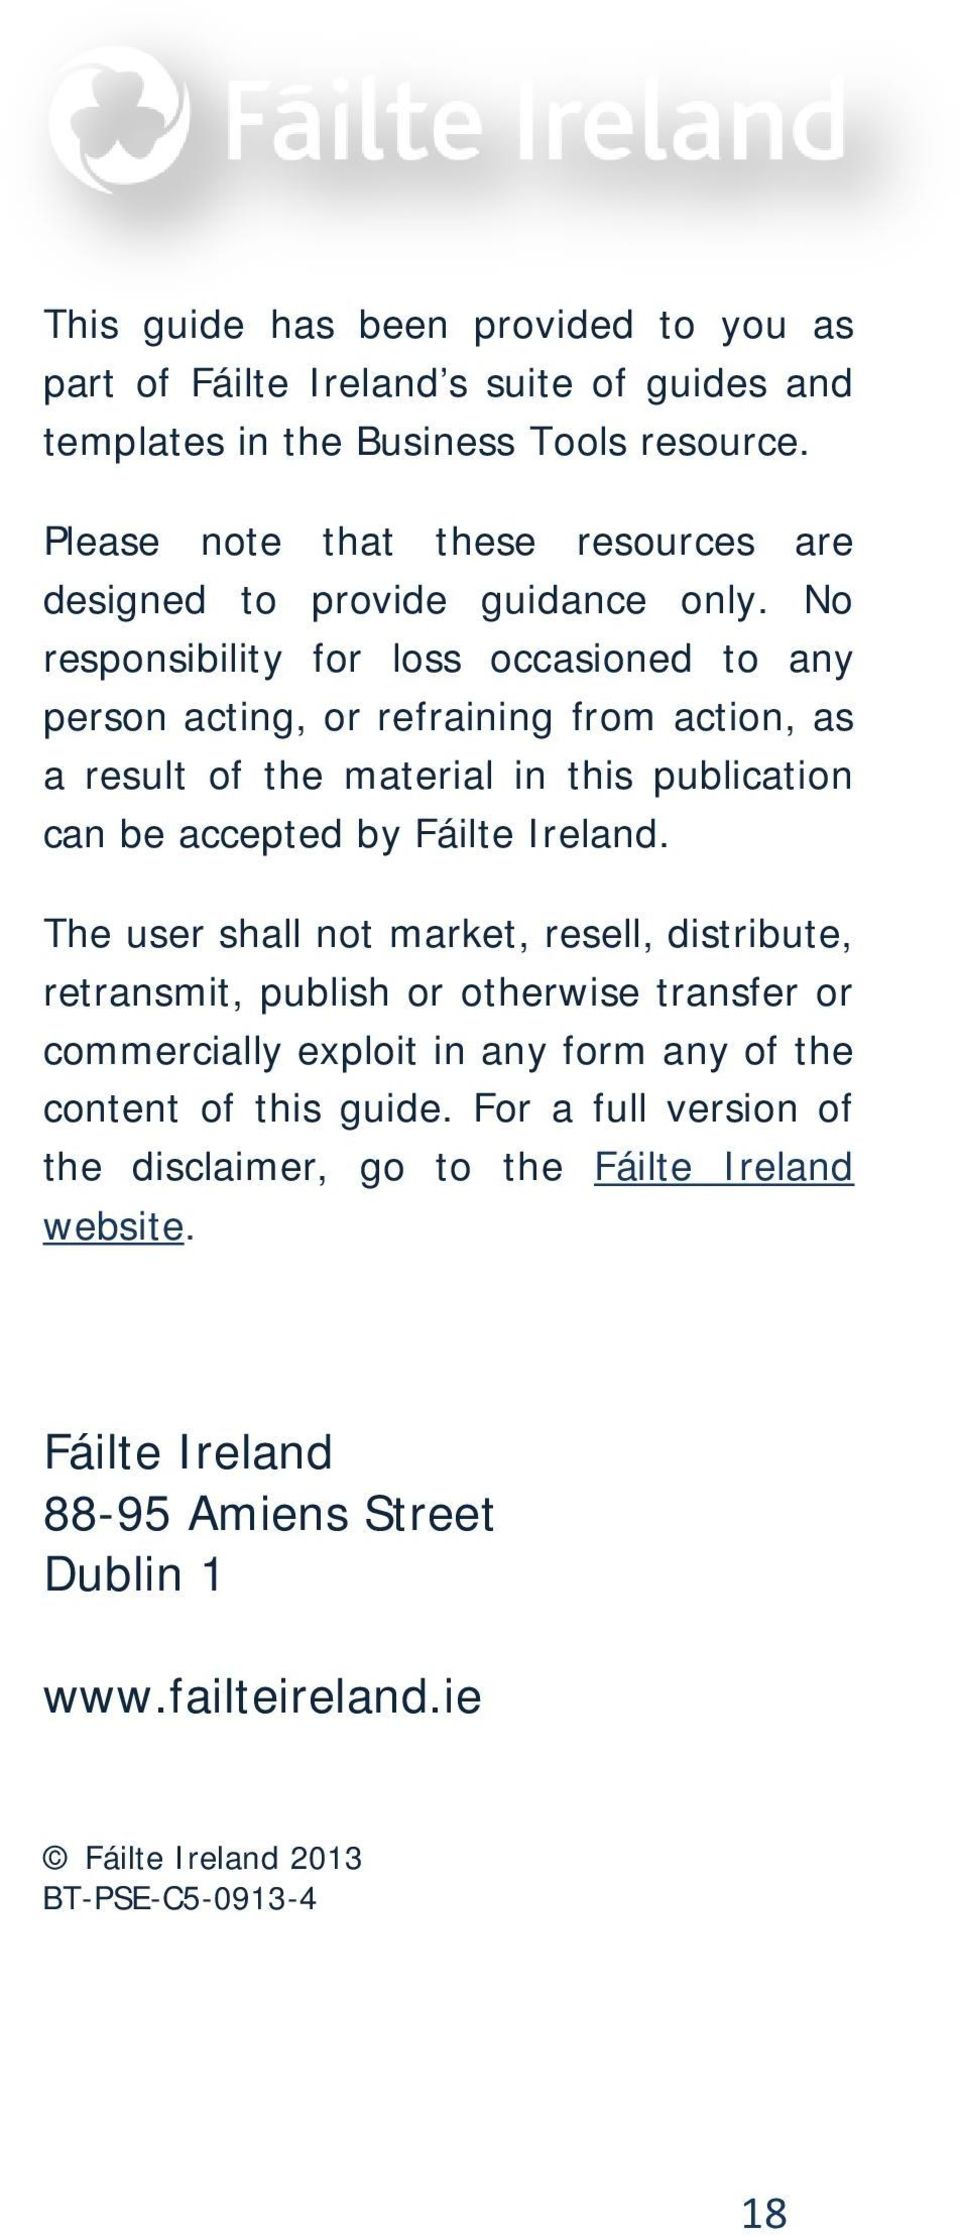 No responsibility for loss occasioned to any person acting, or refraining from action, as a result of the material in this publication can be accepted by Fáilte Ireland.